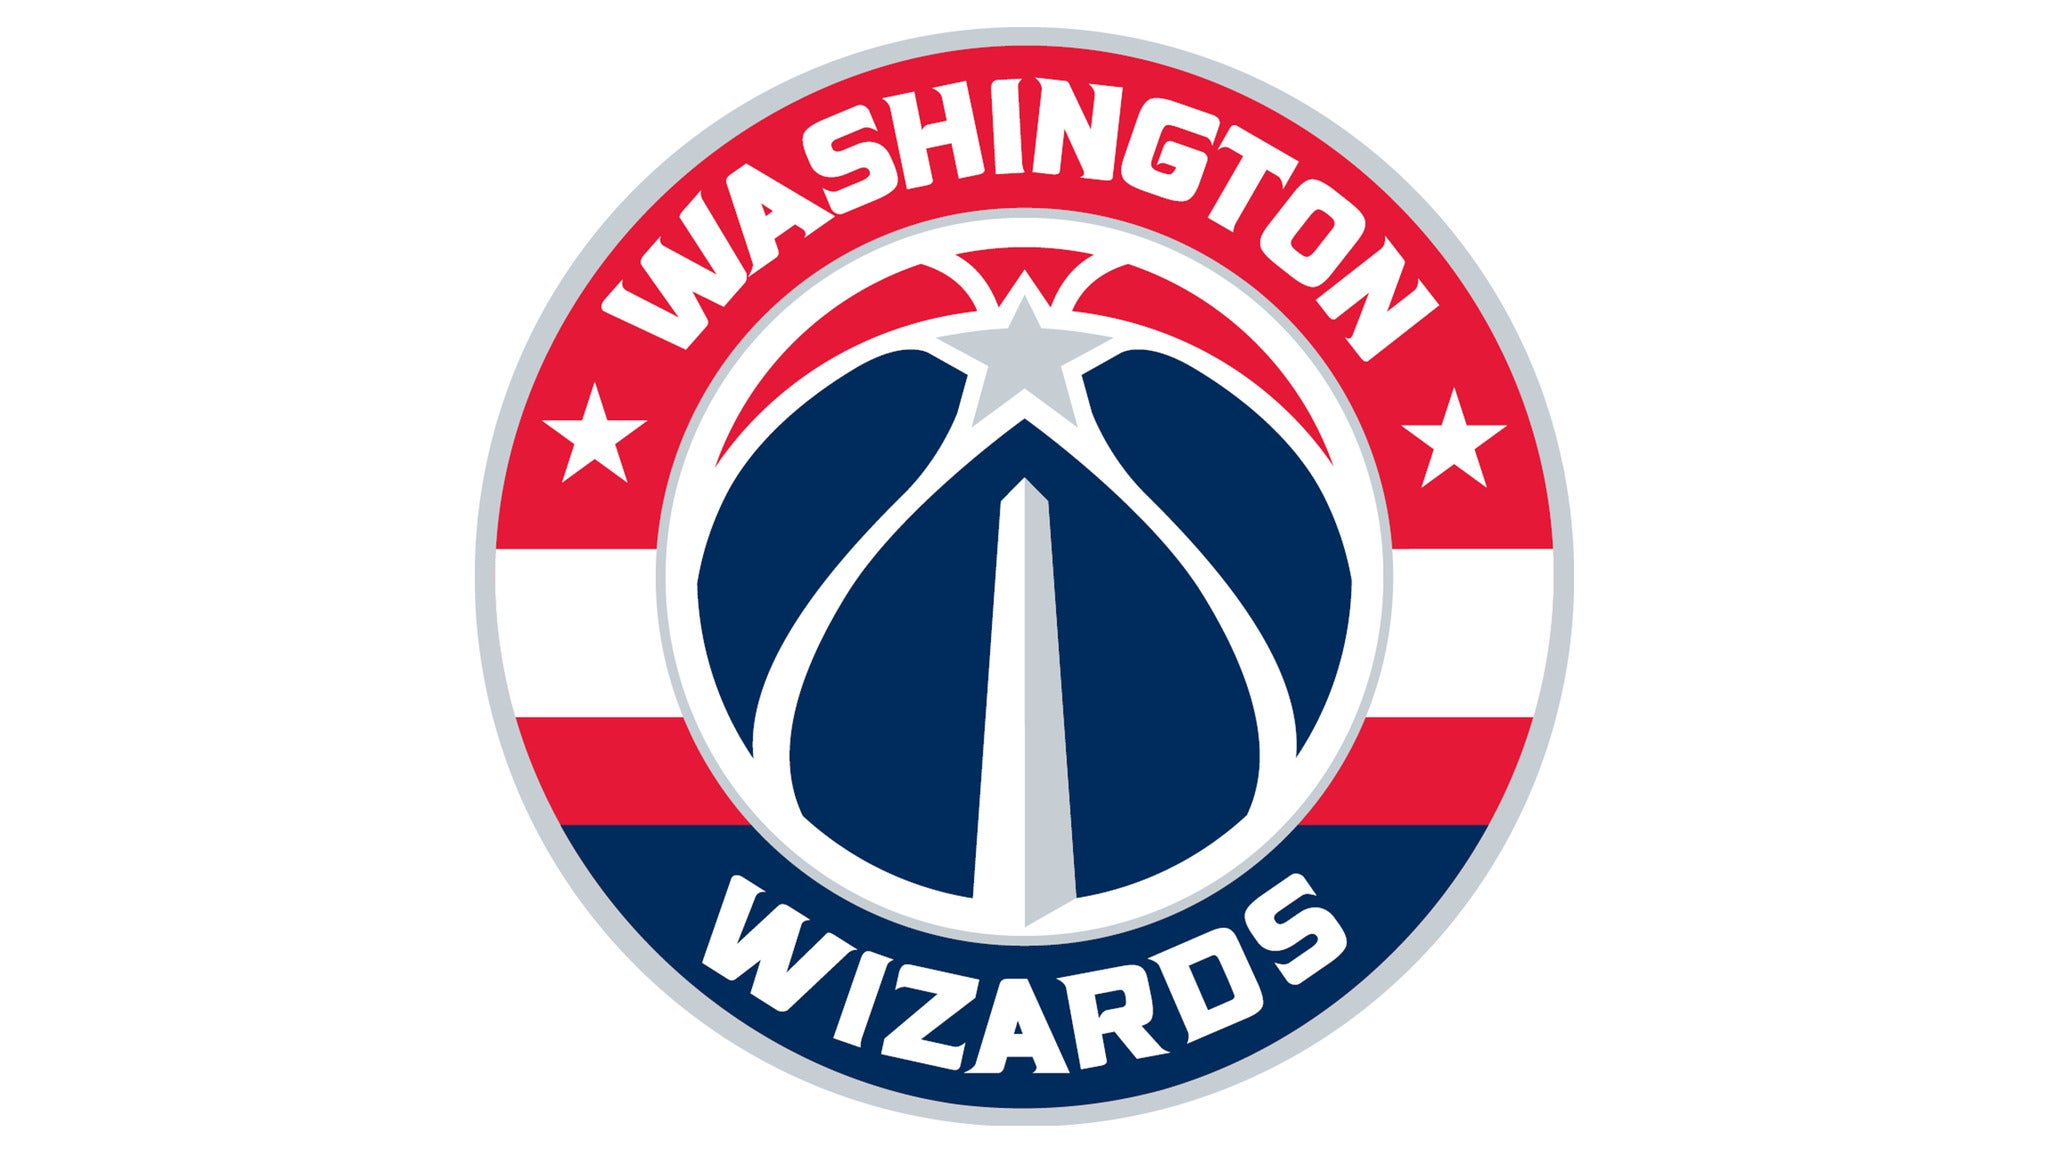 Washington Wizards vs. Phoenix Suns at Capital One Arena - Washington, DC 20004